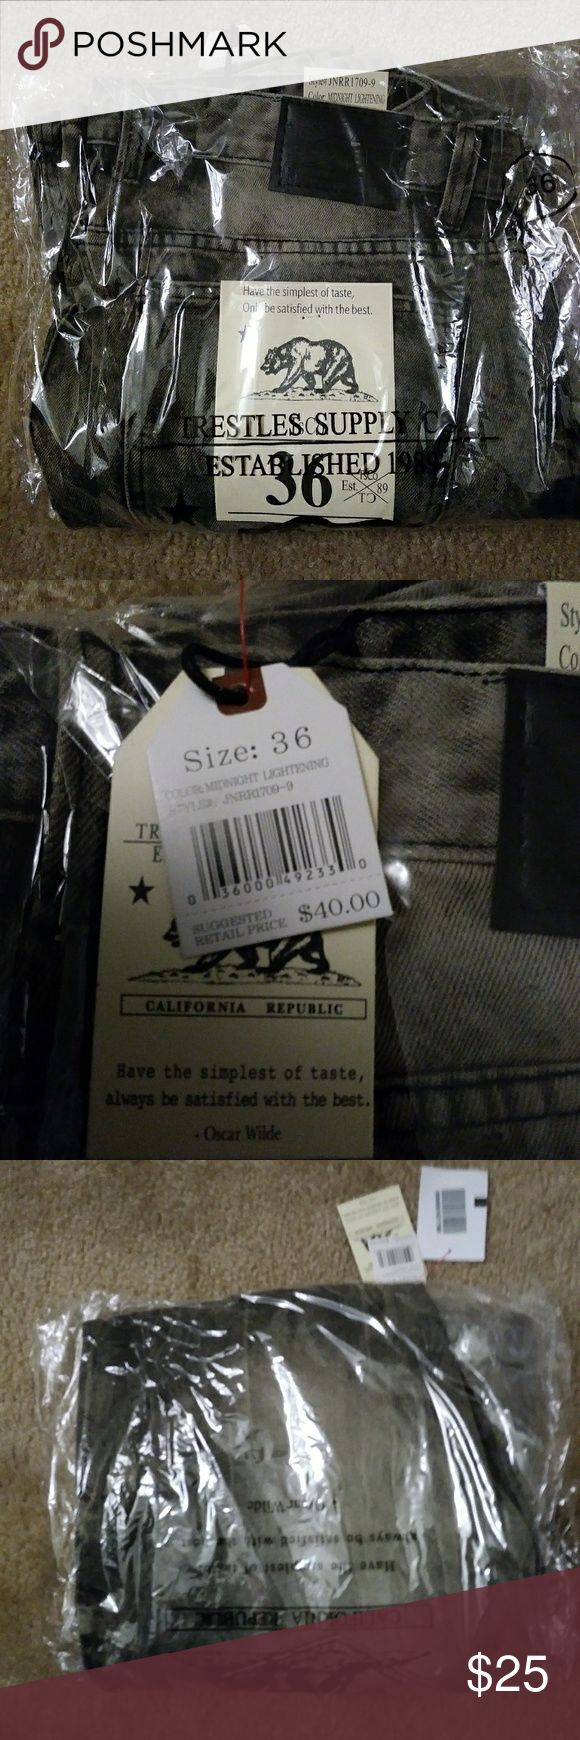 California republic jeans SIZE36 Size 36 Never worn still in package  Midnight lightning/gray color California republic Jeans Relaxed